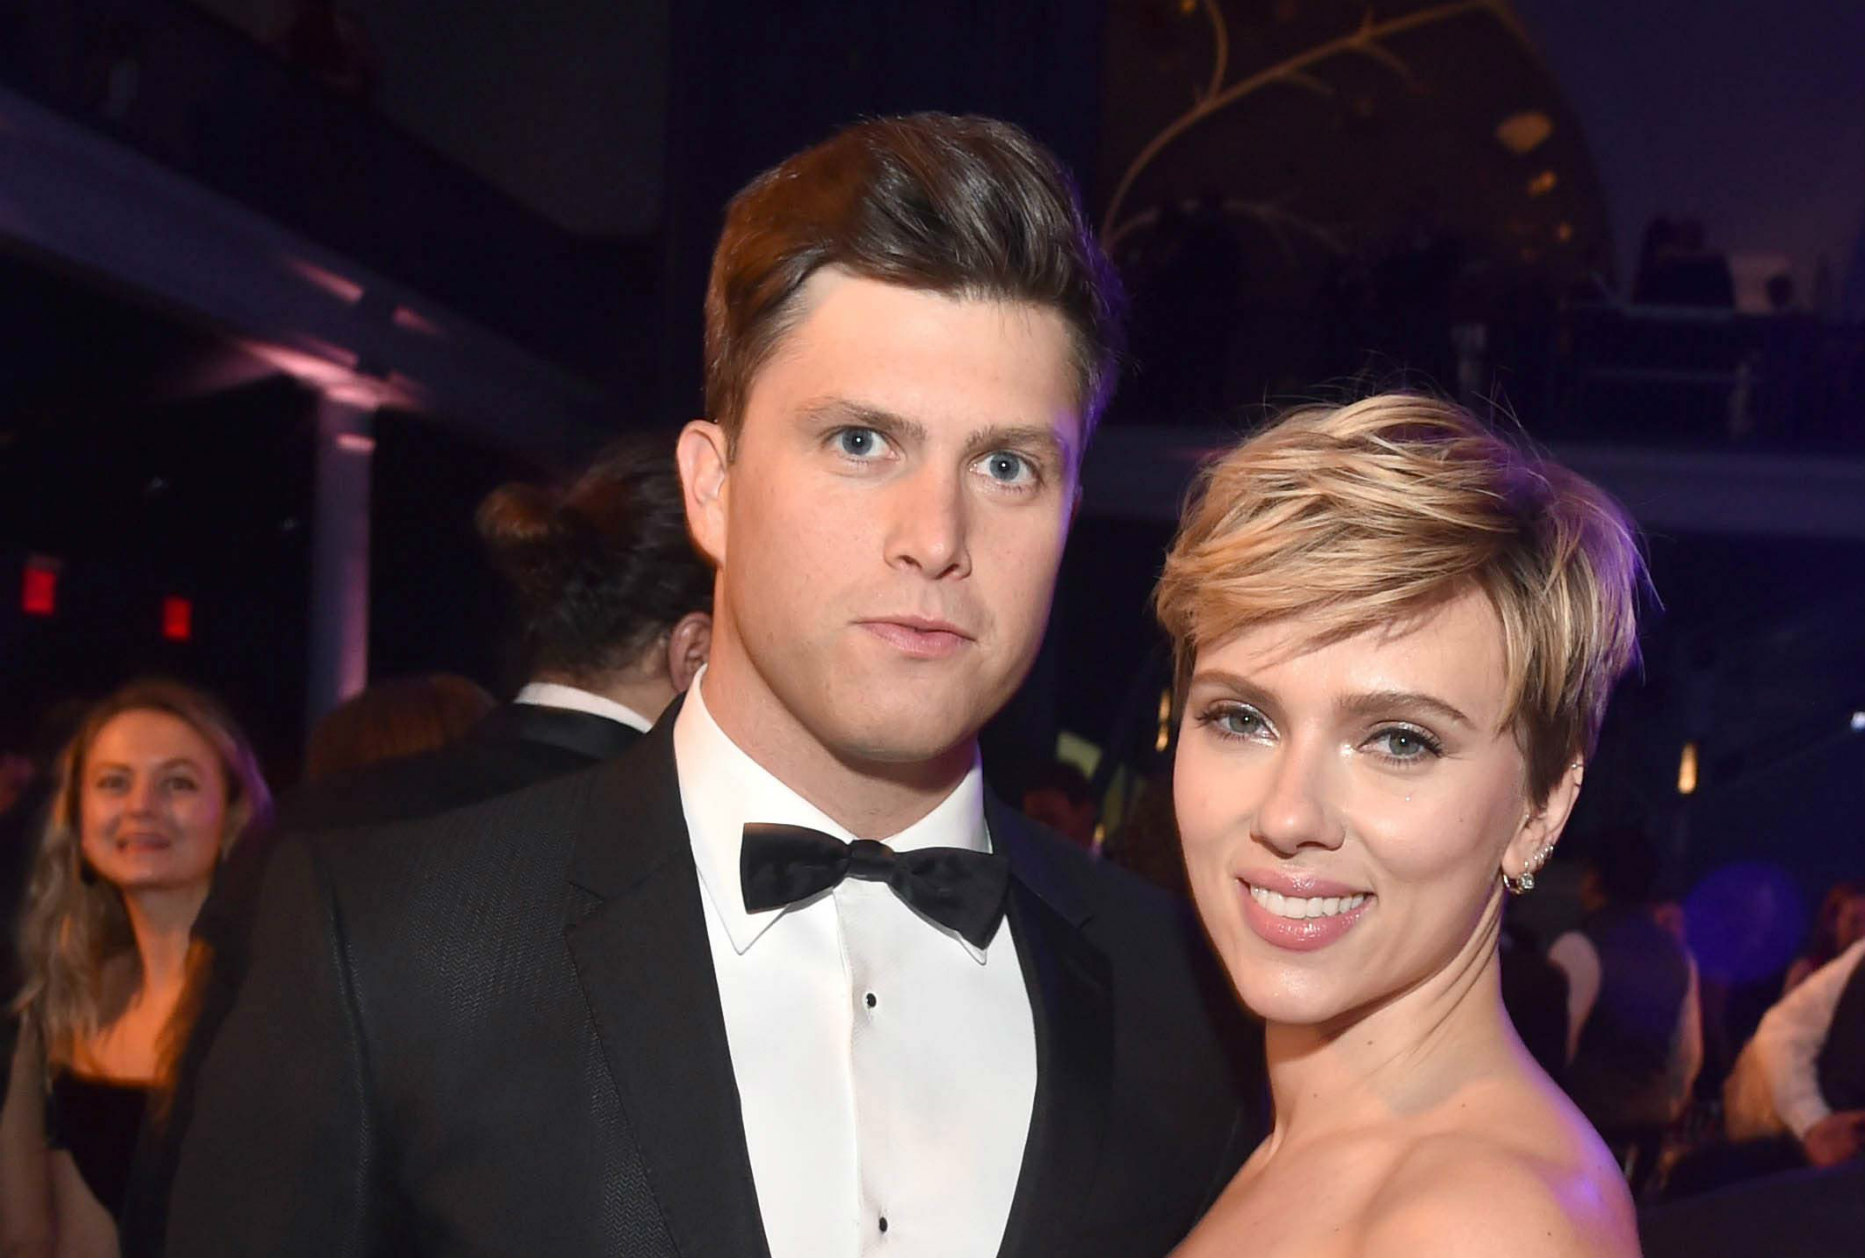 ScarJo Has a New Beau